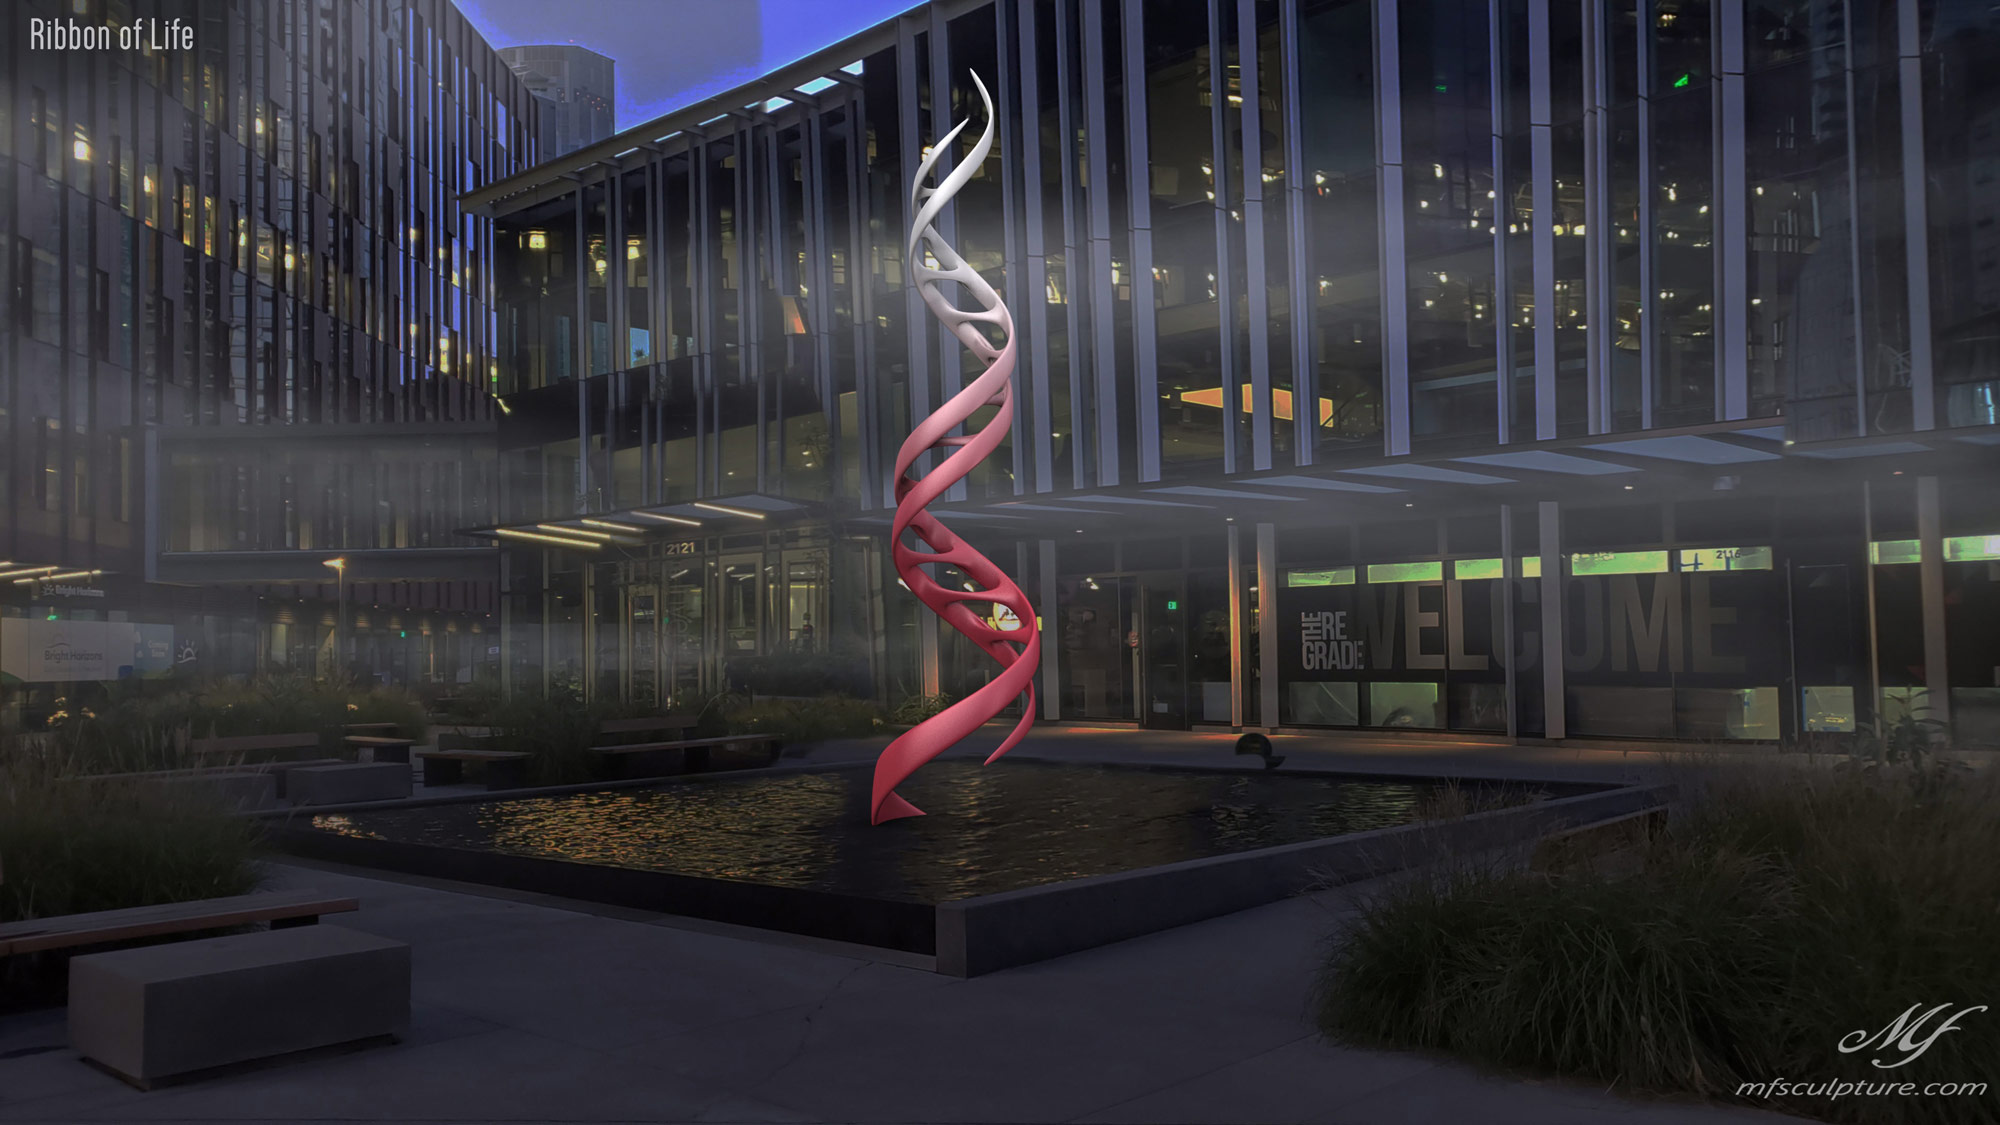 DNA Double Helix Sculpture Contemporary Biology 6